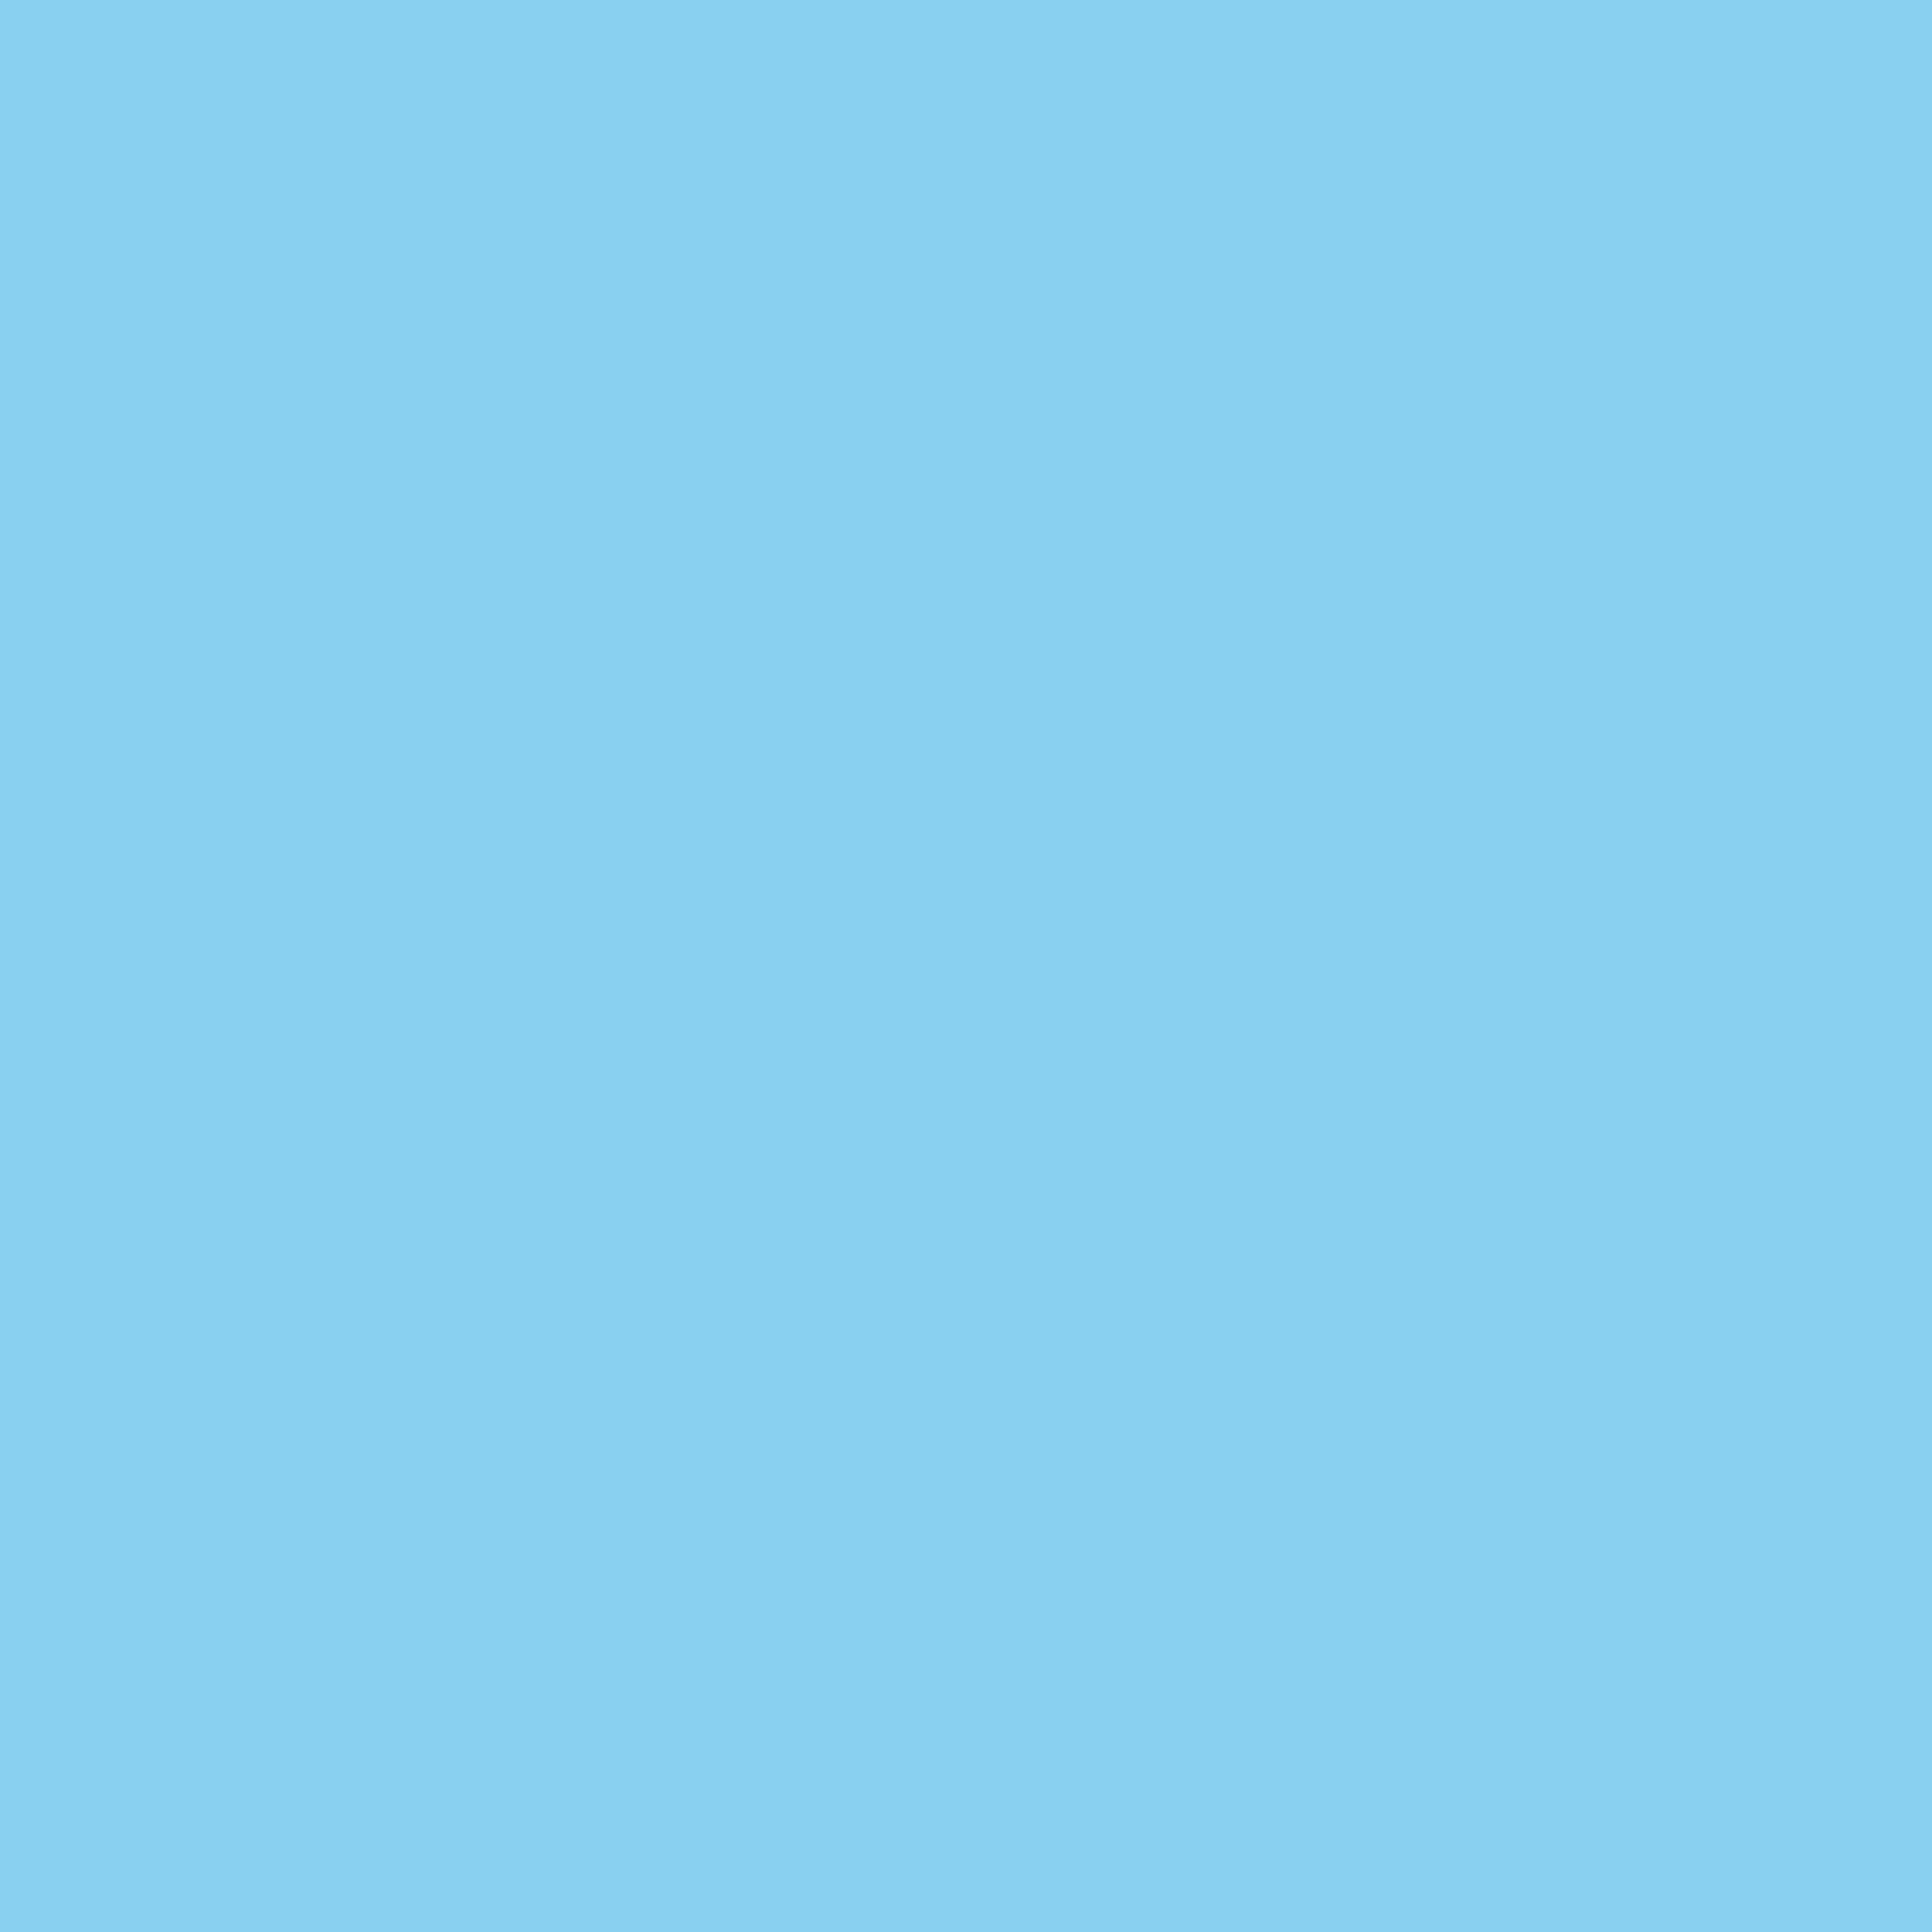 2048x2048 Baby Blue Solid Color Background